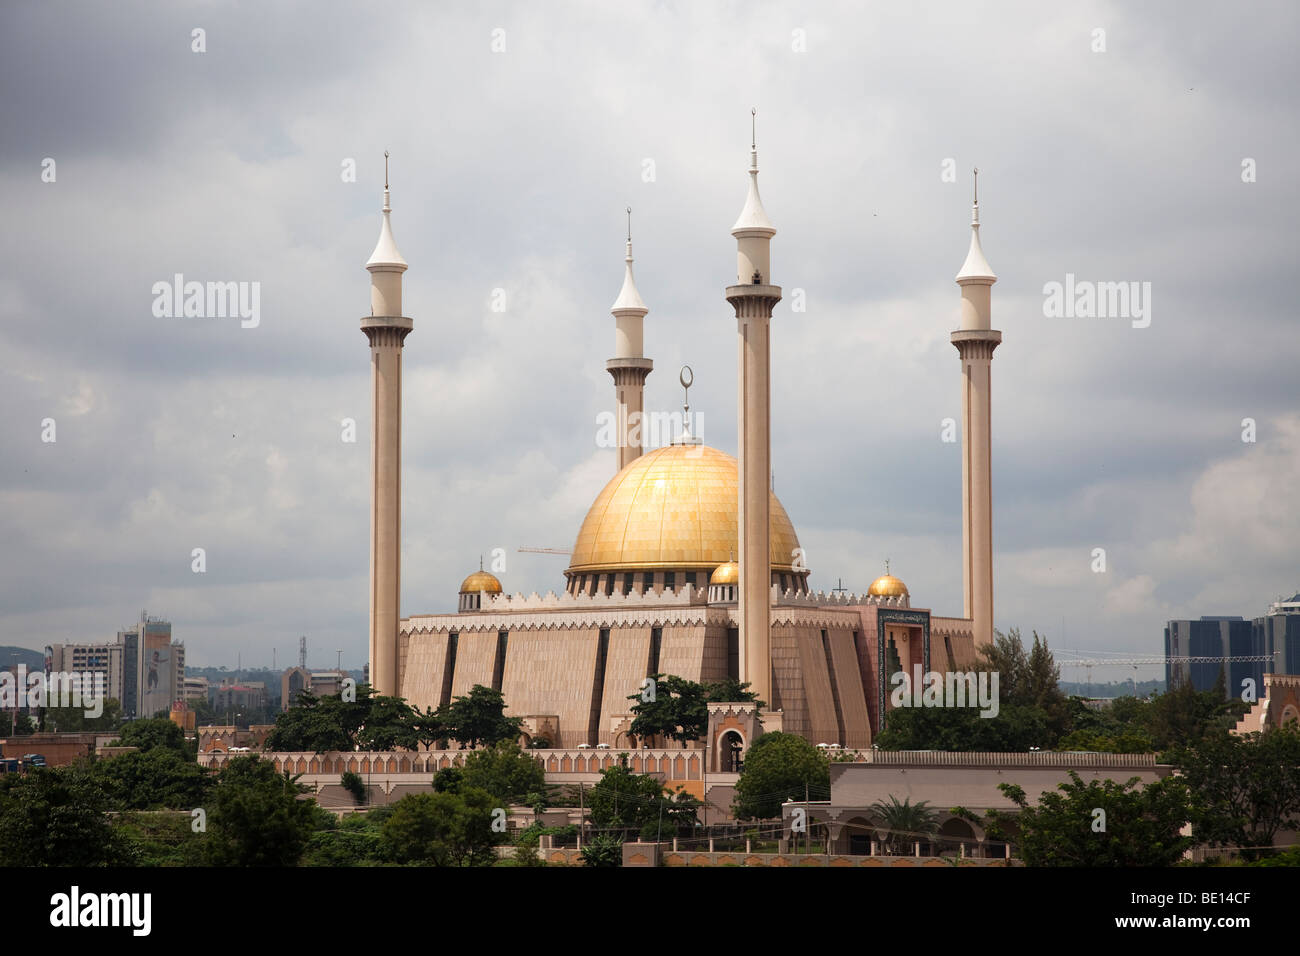 Grand Mosque in Nigeria's capital city of Nigeria - Stock Image